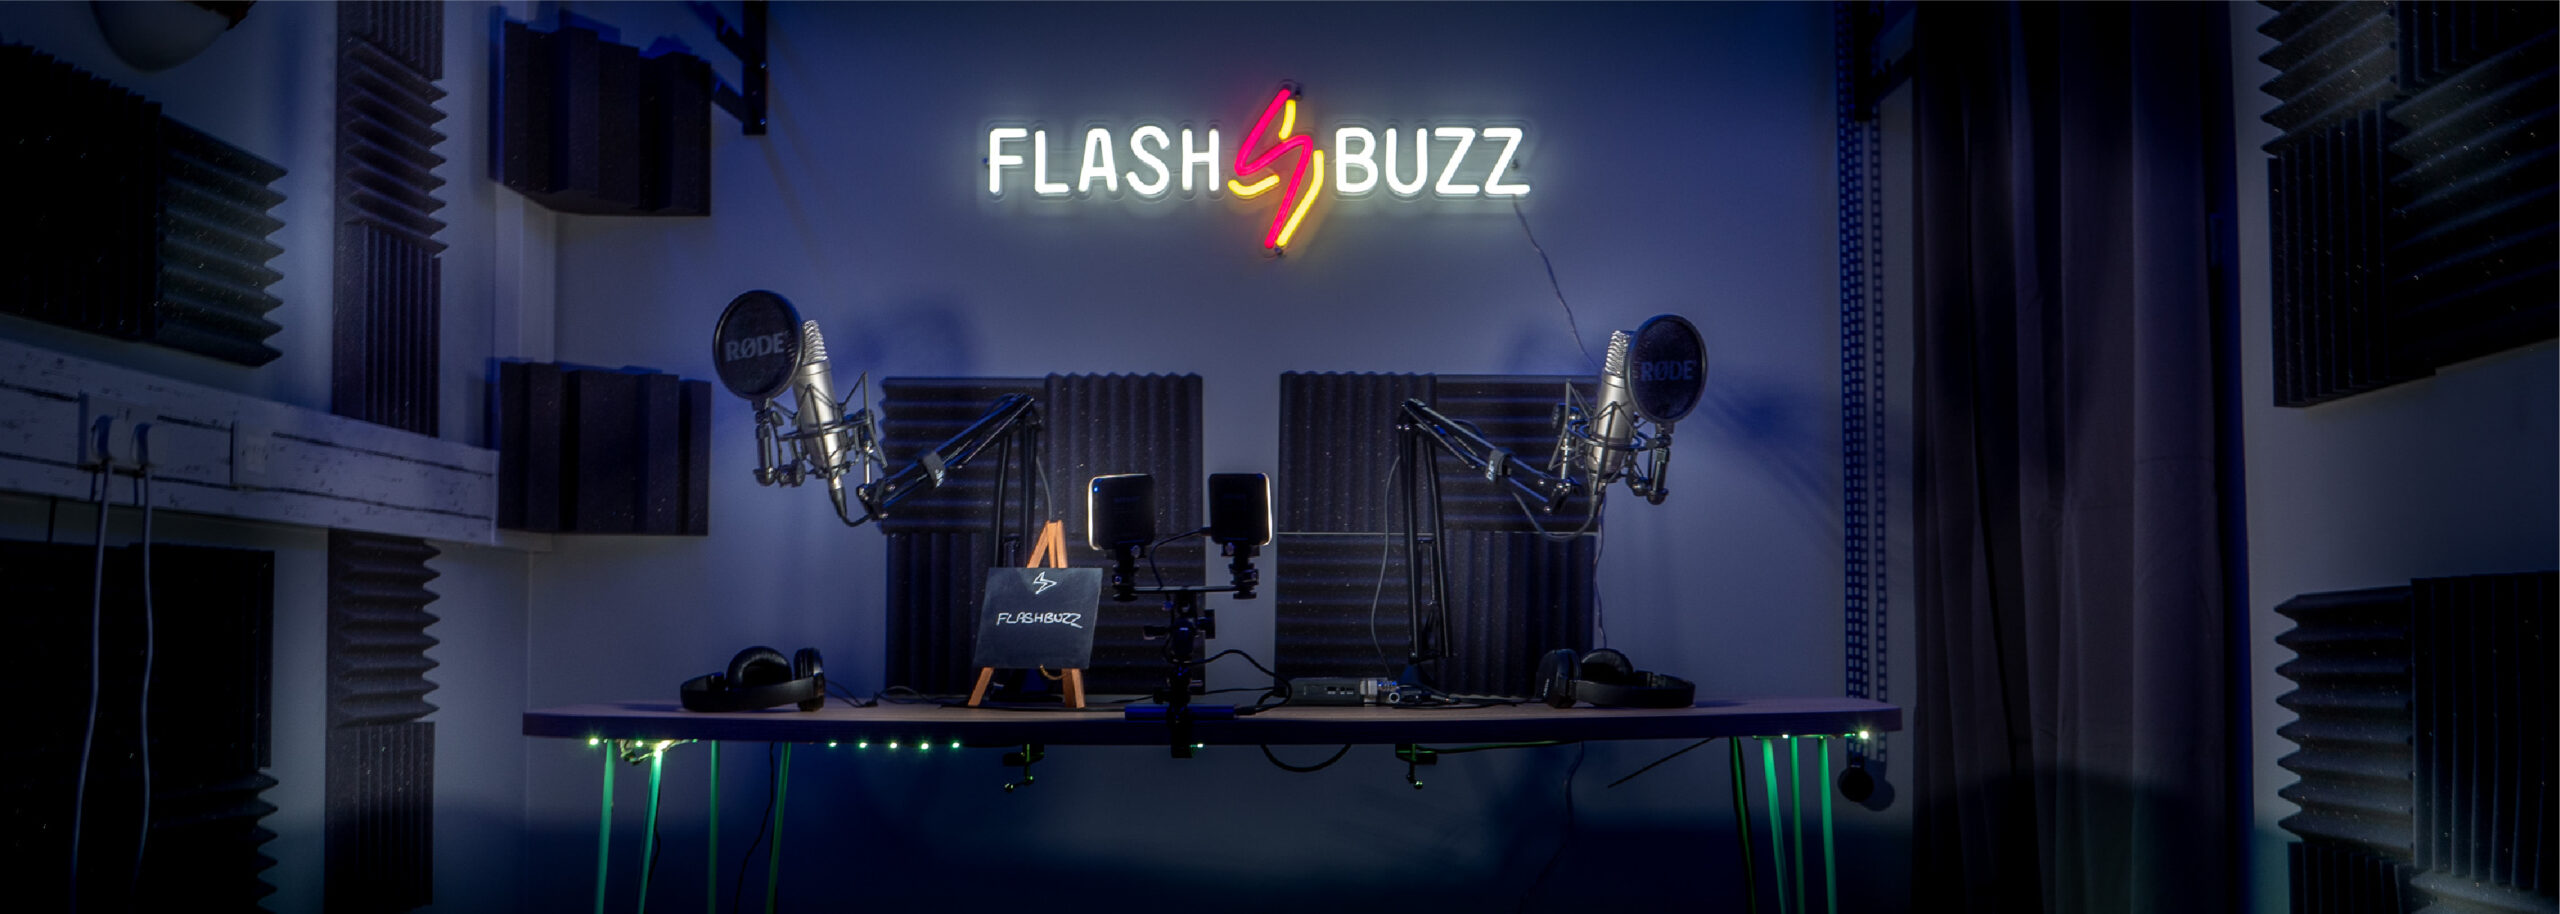 Flashbuzz Flashcast Podcast